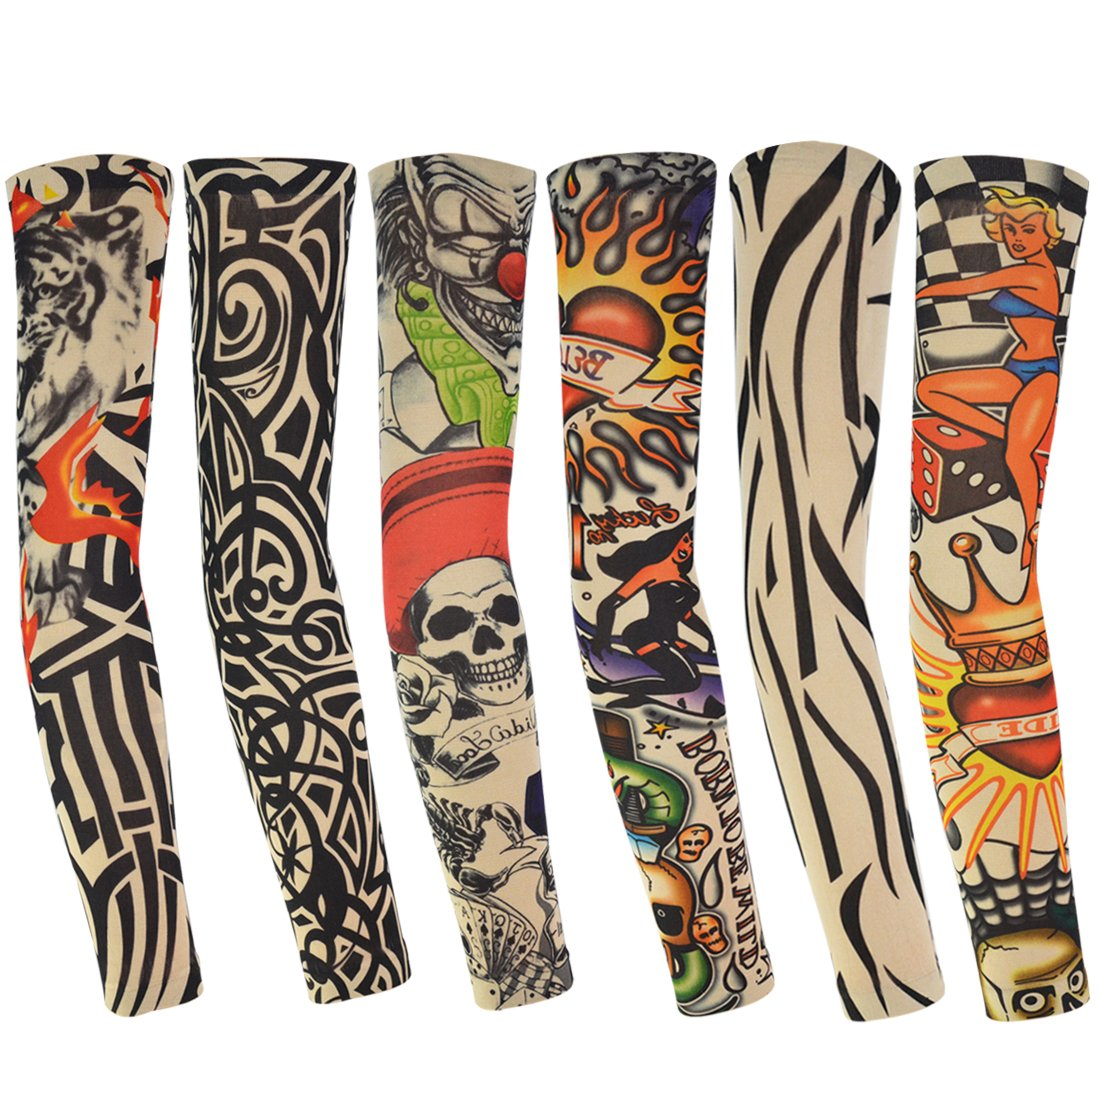 Dxhycc 6pcs Temporary Fake Slip on Tattoo Arm Sleeves Stockings, Temporary Tattoo Arm Sunscreen Sleeves, Designs Skull, Tiger, Crown Heart, Tribal Shape, Unisex Stretchable Cosplay Accessories CM800 fbam